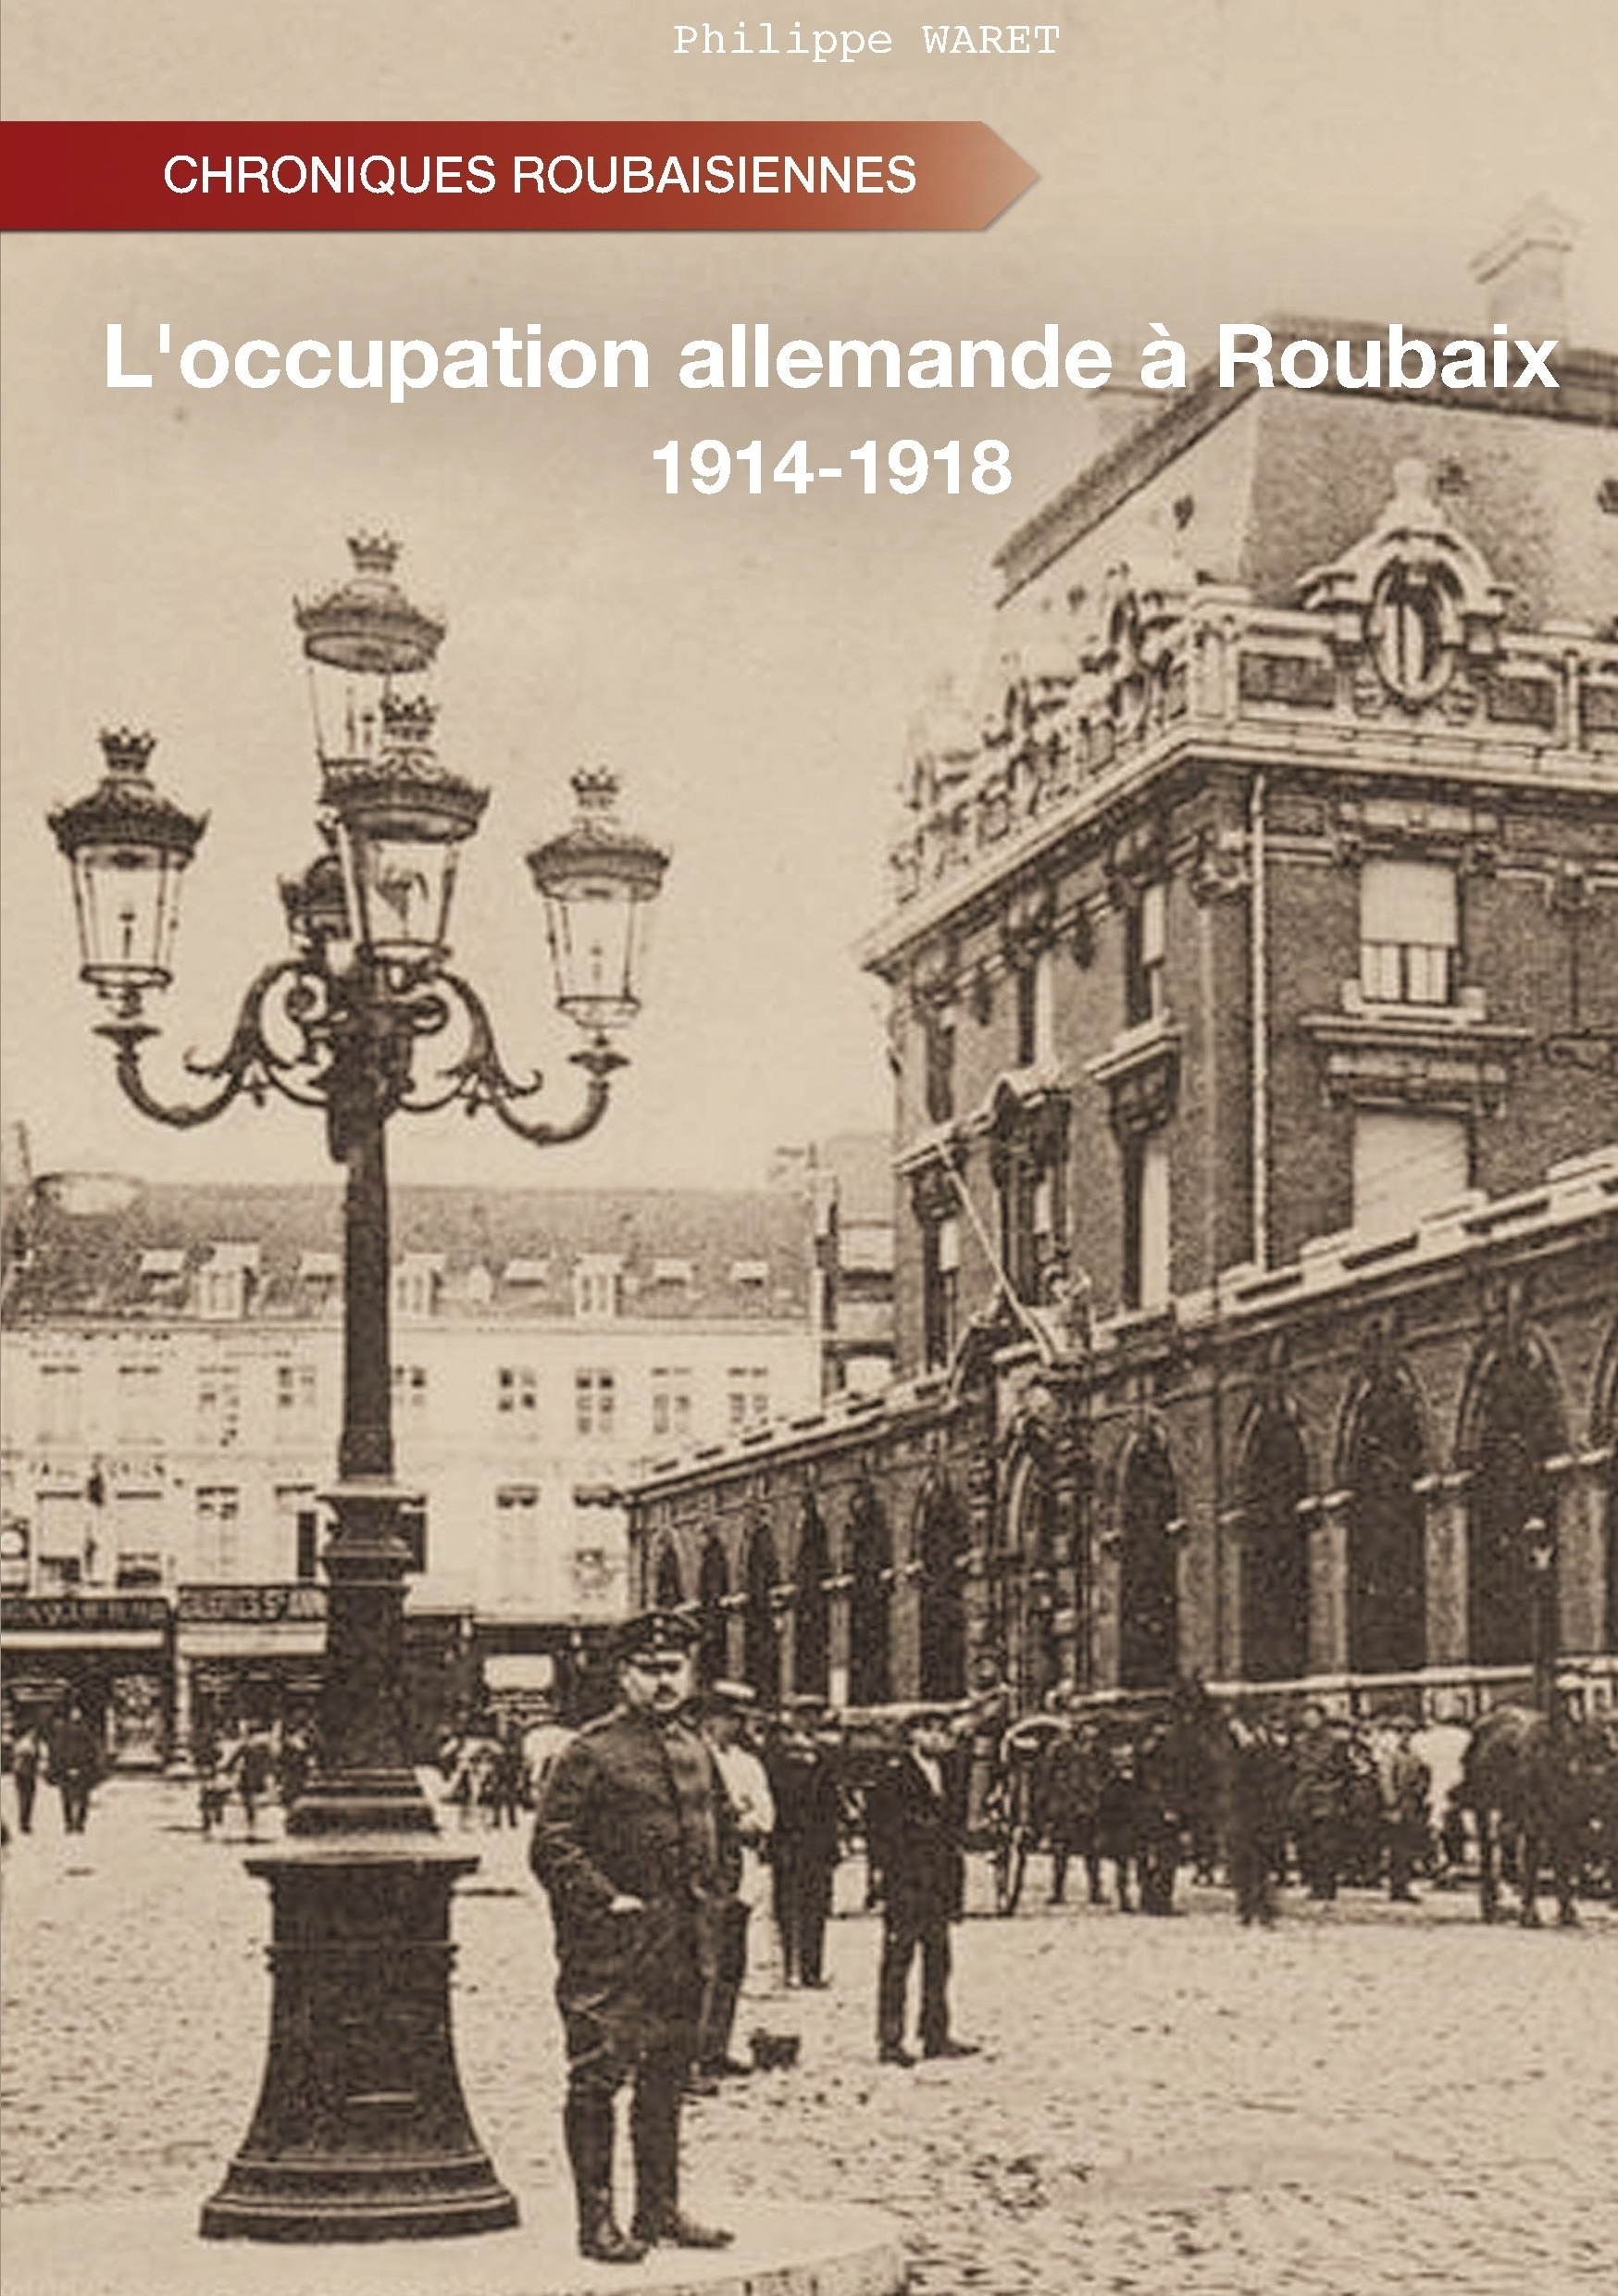 L'OCCUPATION ALLEMANDE A ROUBAIX - 1914-1918